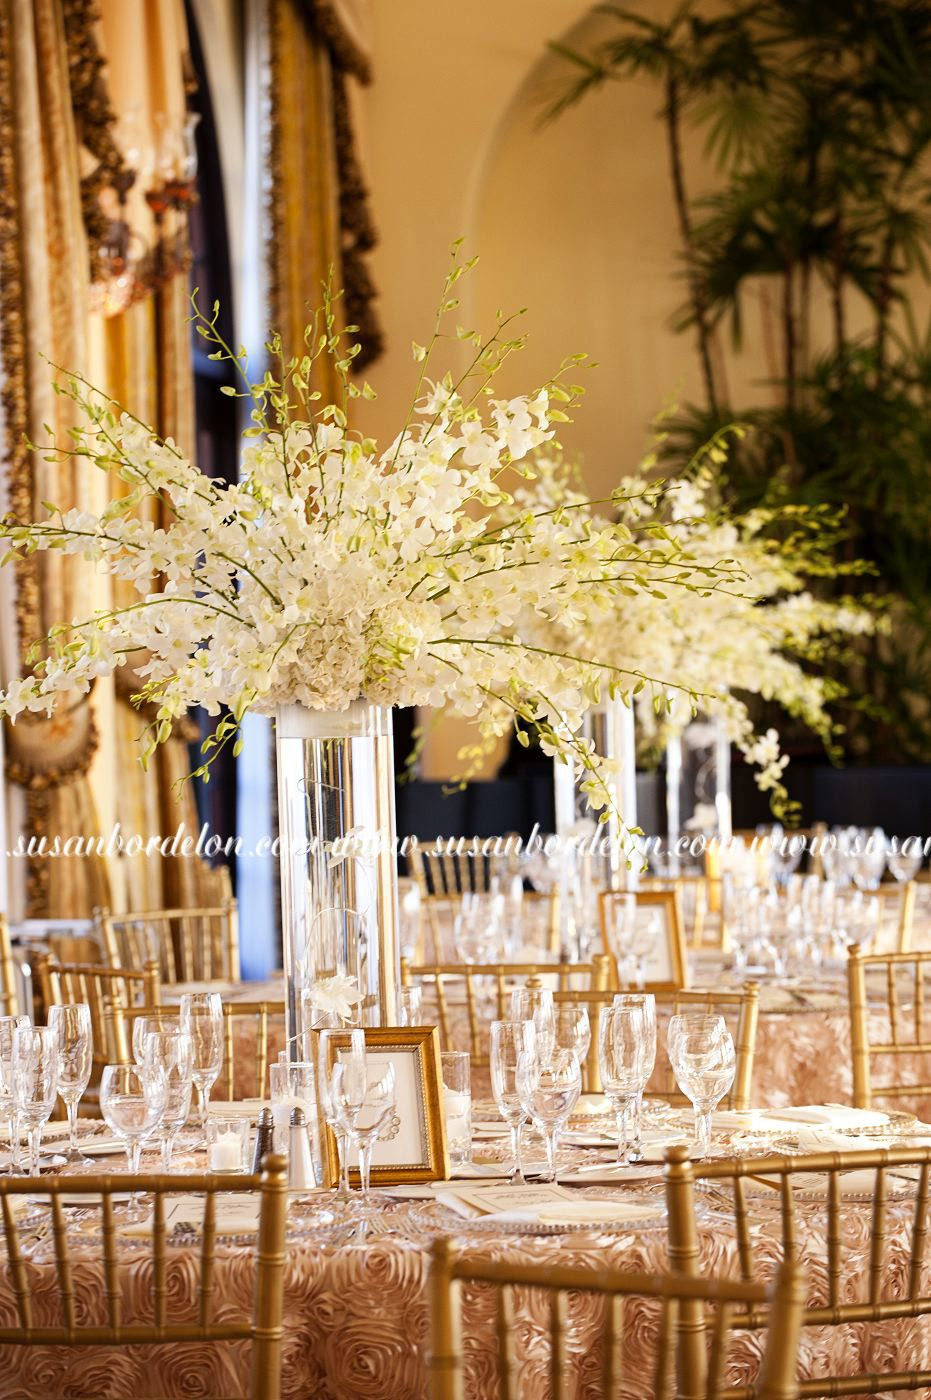 Riviera country club wedding center pieces in my dreams